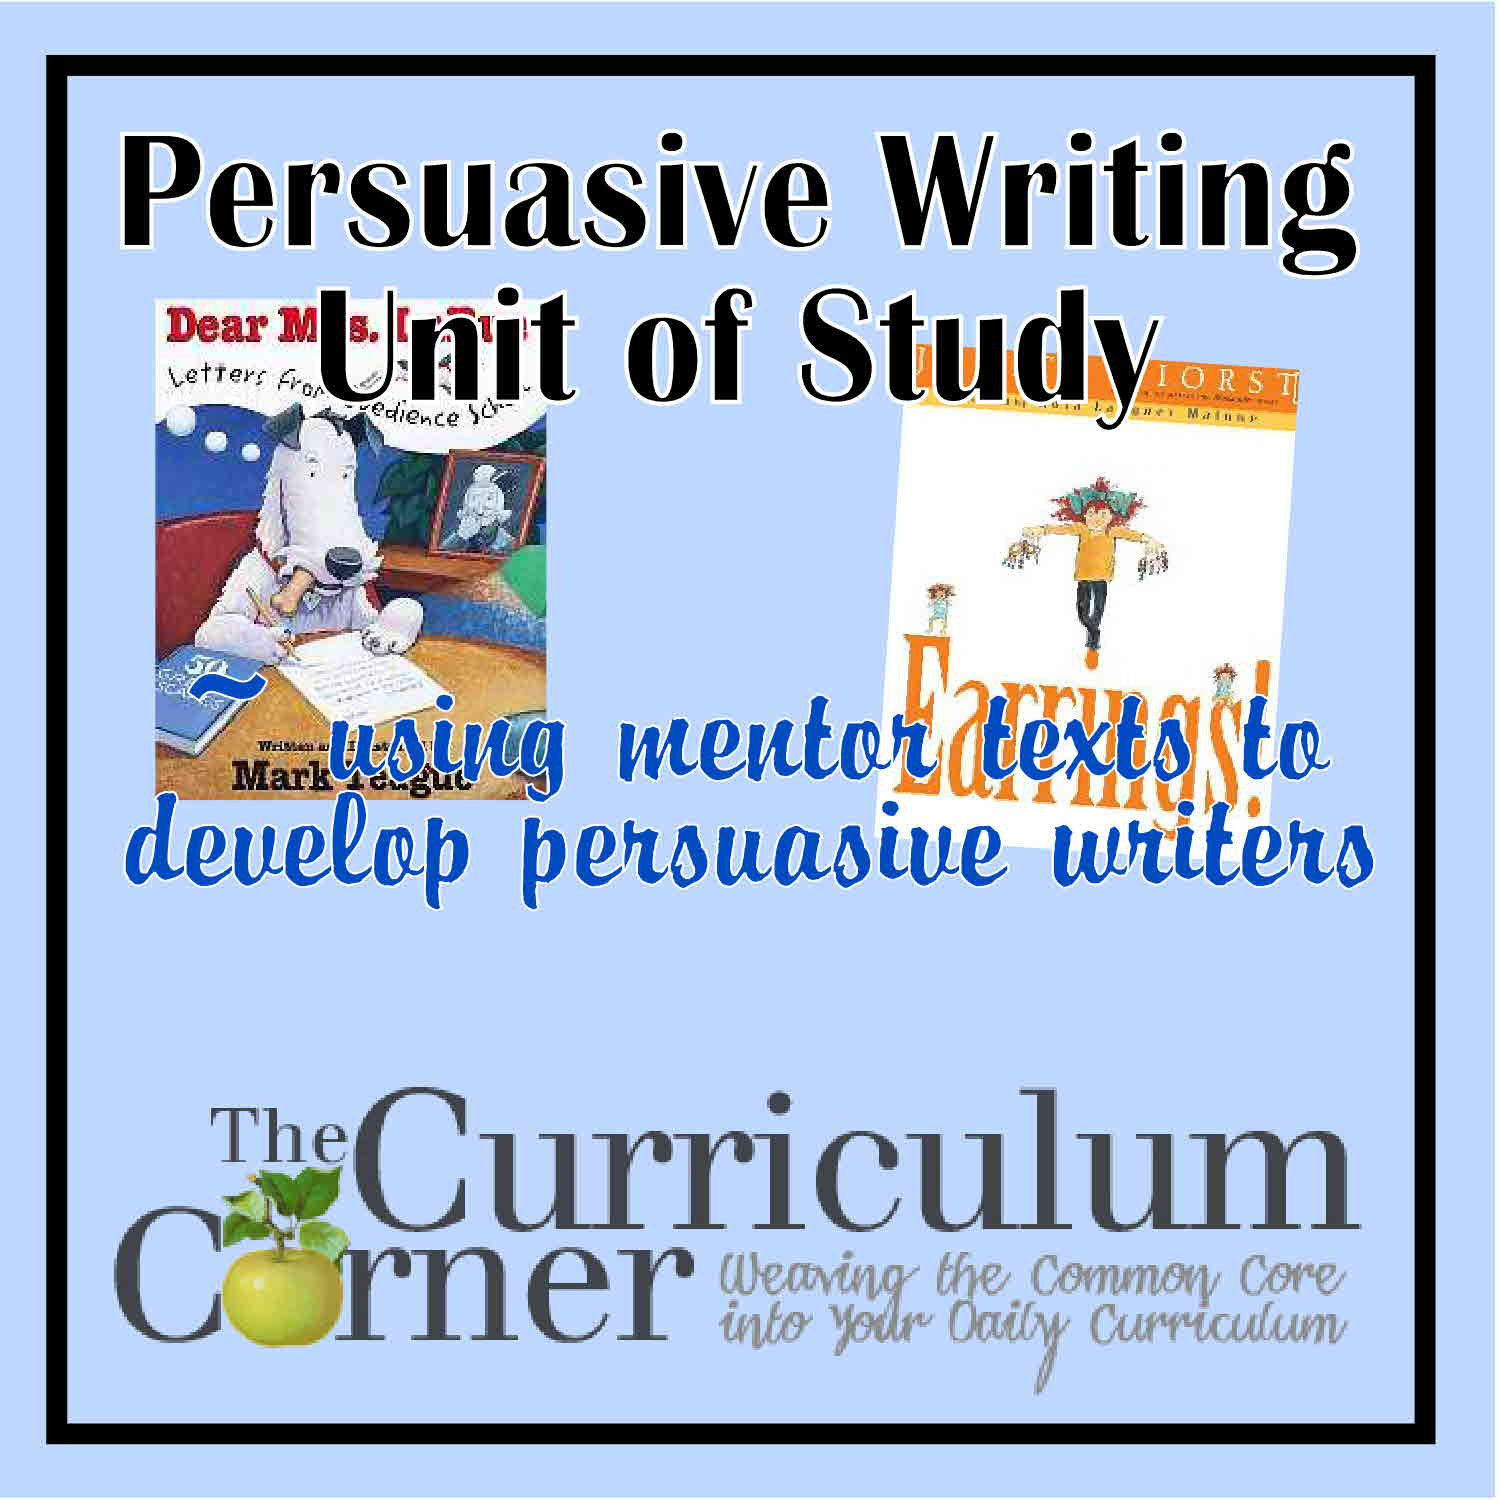 2nd grade persuasive writing Opinion / persuasive writing prompts 2nd and 3rd grade, 4th and 5th grade, grades k-12 my favorite activity - writing activity in this worksheet, your student will write an opinion passage about her favorite activity grade levels.